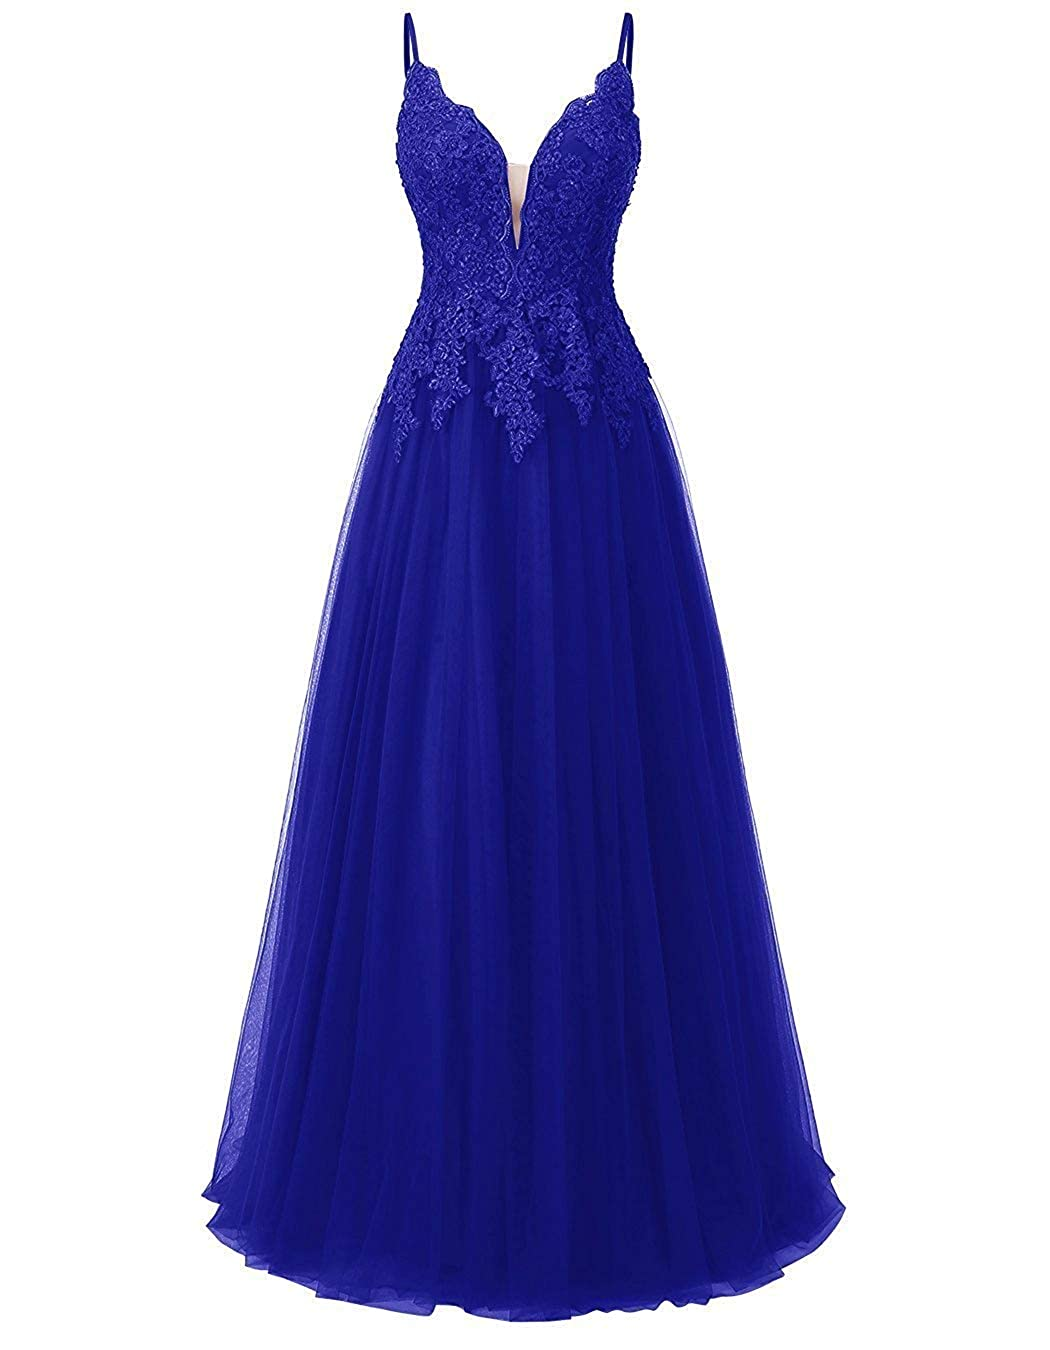 Royal bluee JAEDEN Prom Dresses Long Evening Gowns Tulle Evening Dresses for Party Lace Bridesmaid Dress Long Party Dress